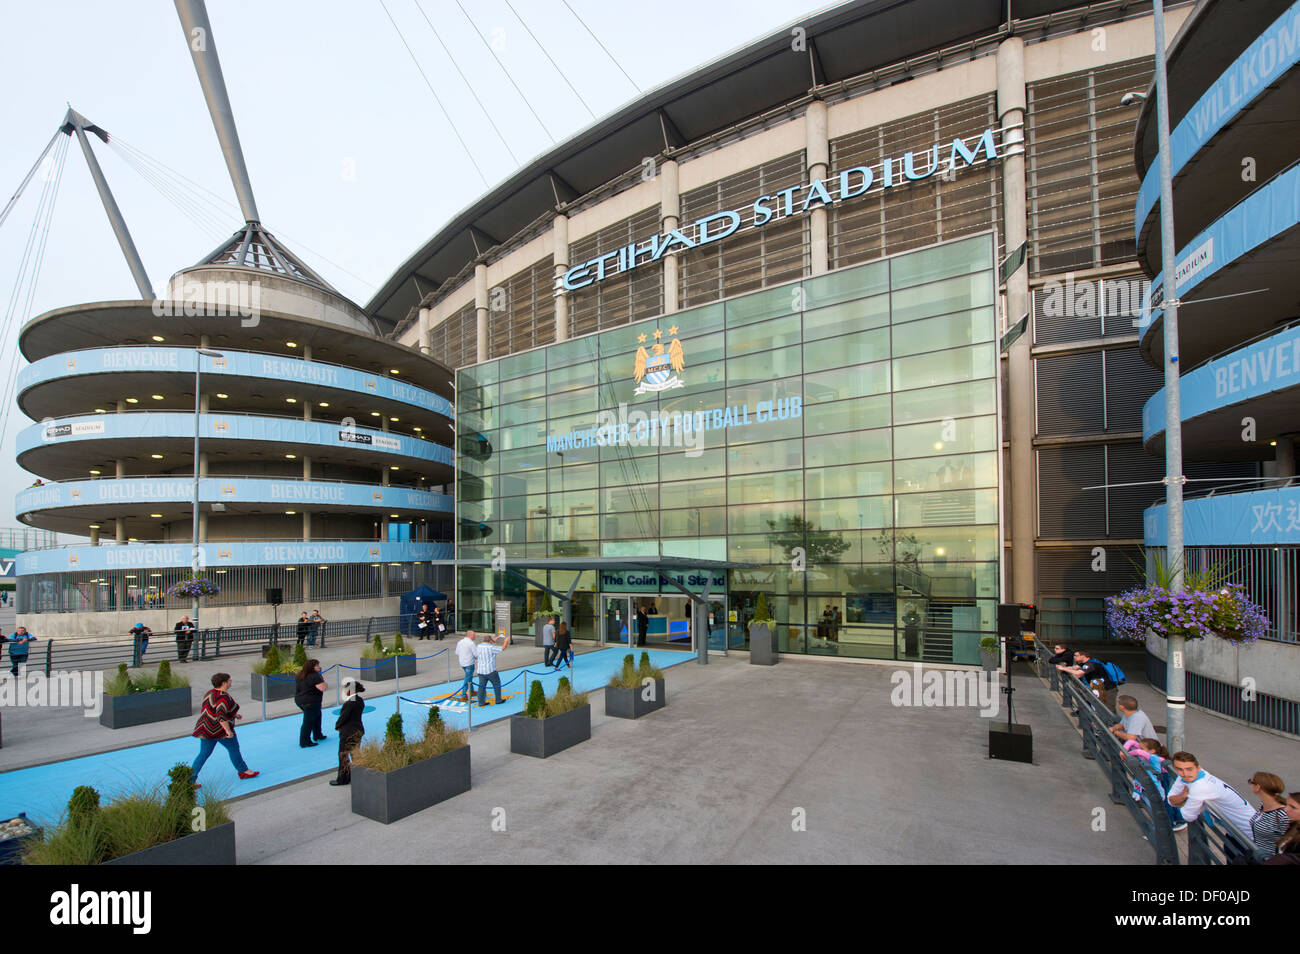 An external view of the Etihad Stadium, home of Manchester City Football Club (Editorial use only). - Stock Image